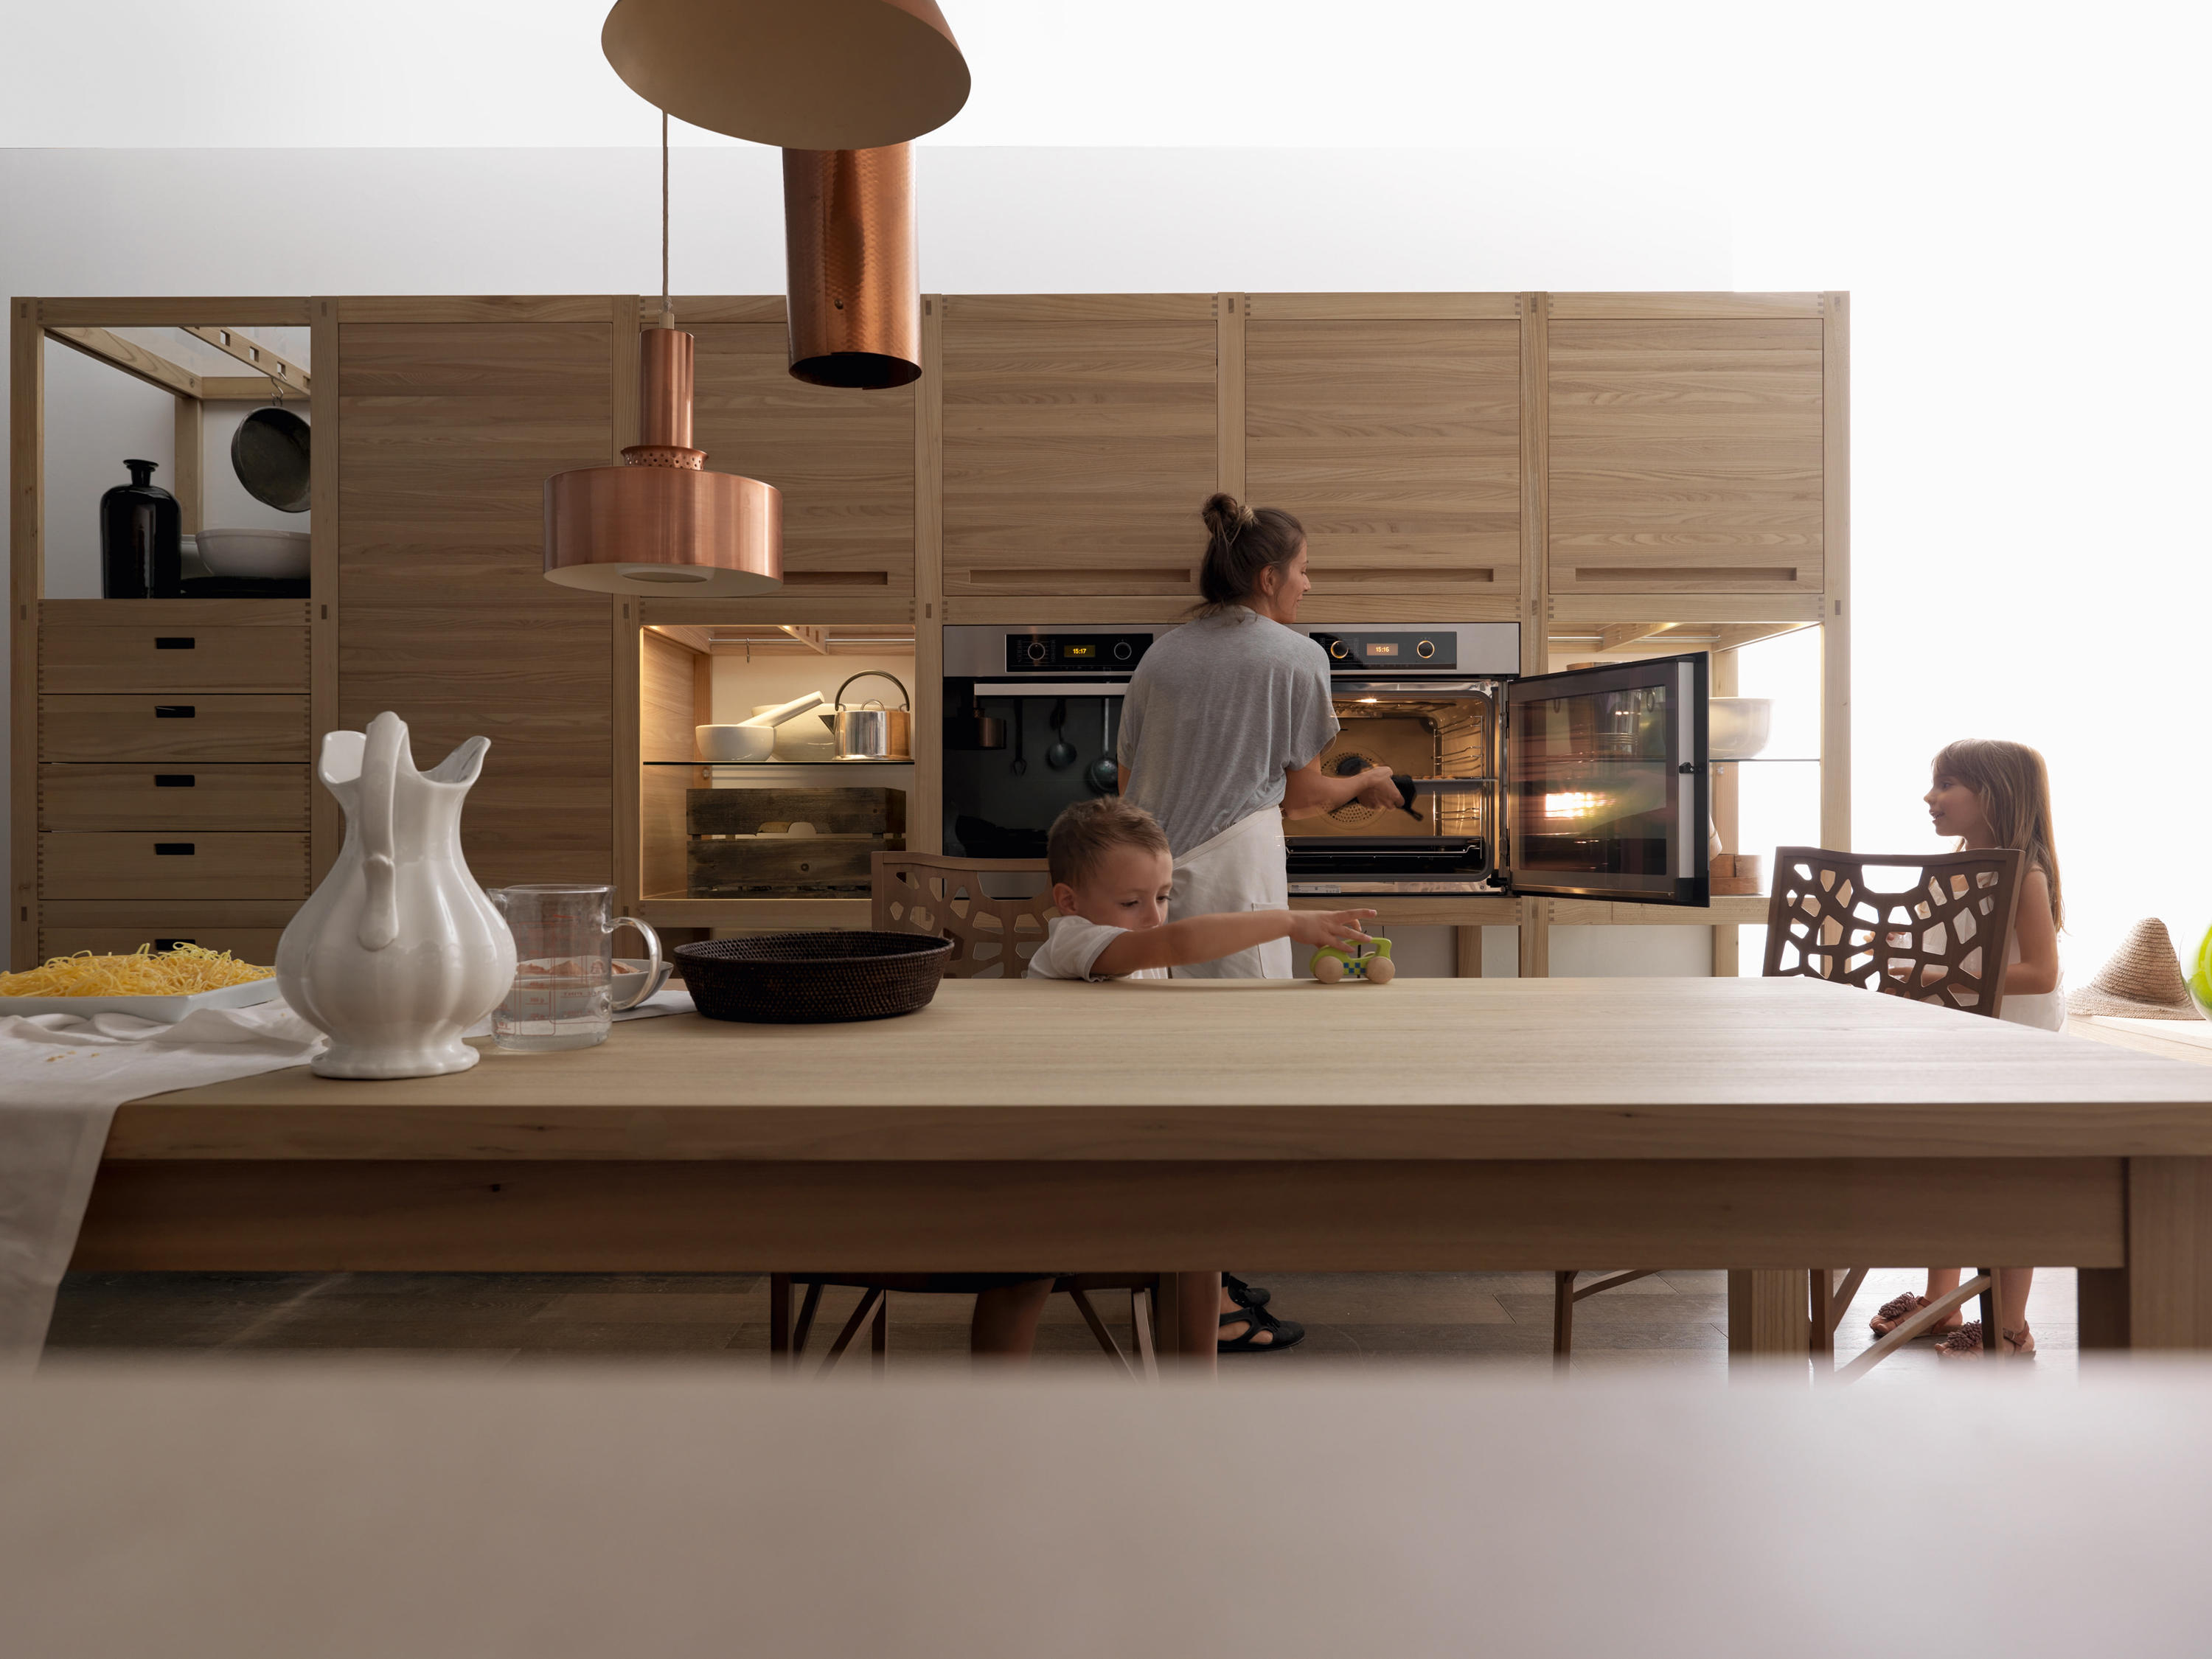 SINE TEMPORE Fitted kitchens from Valcucine